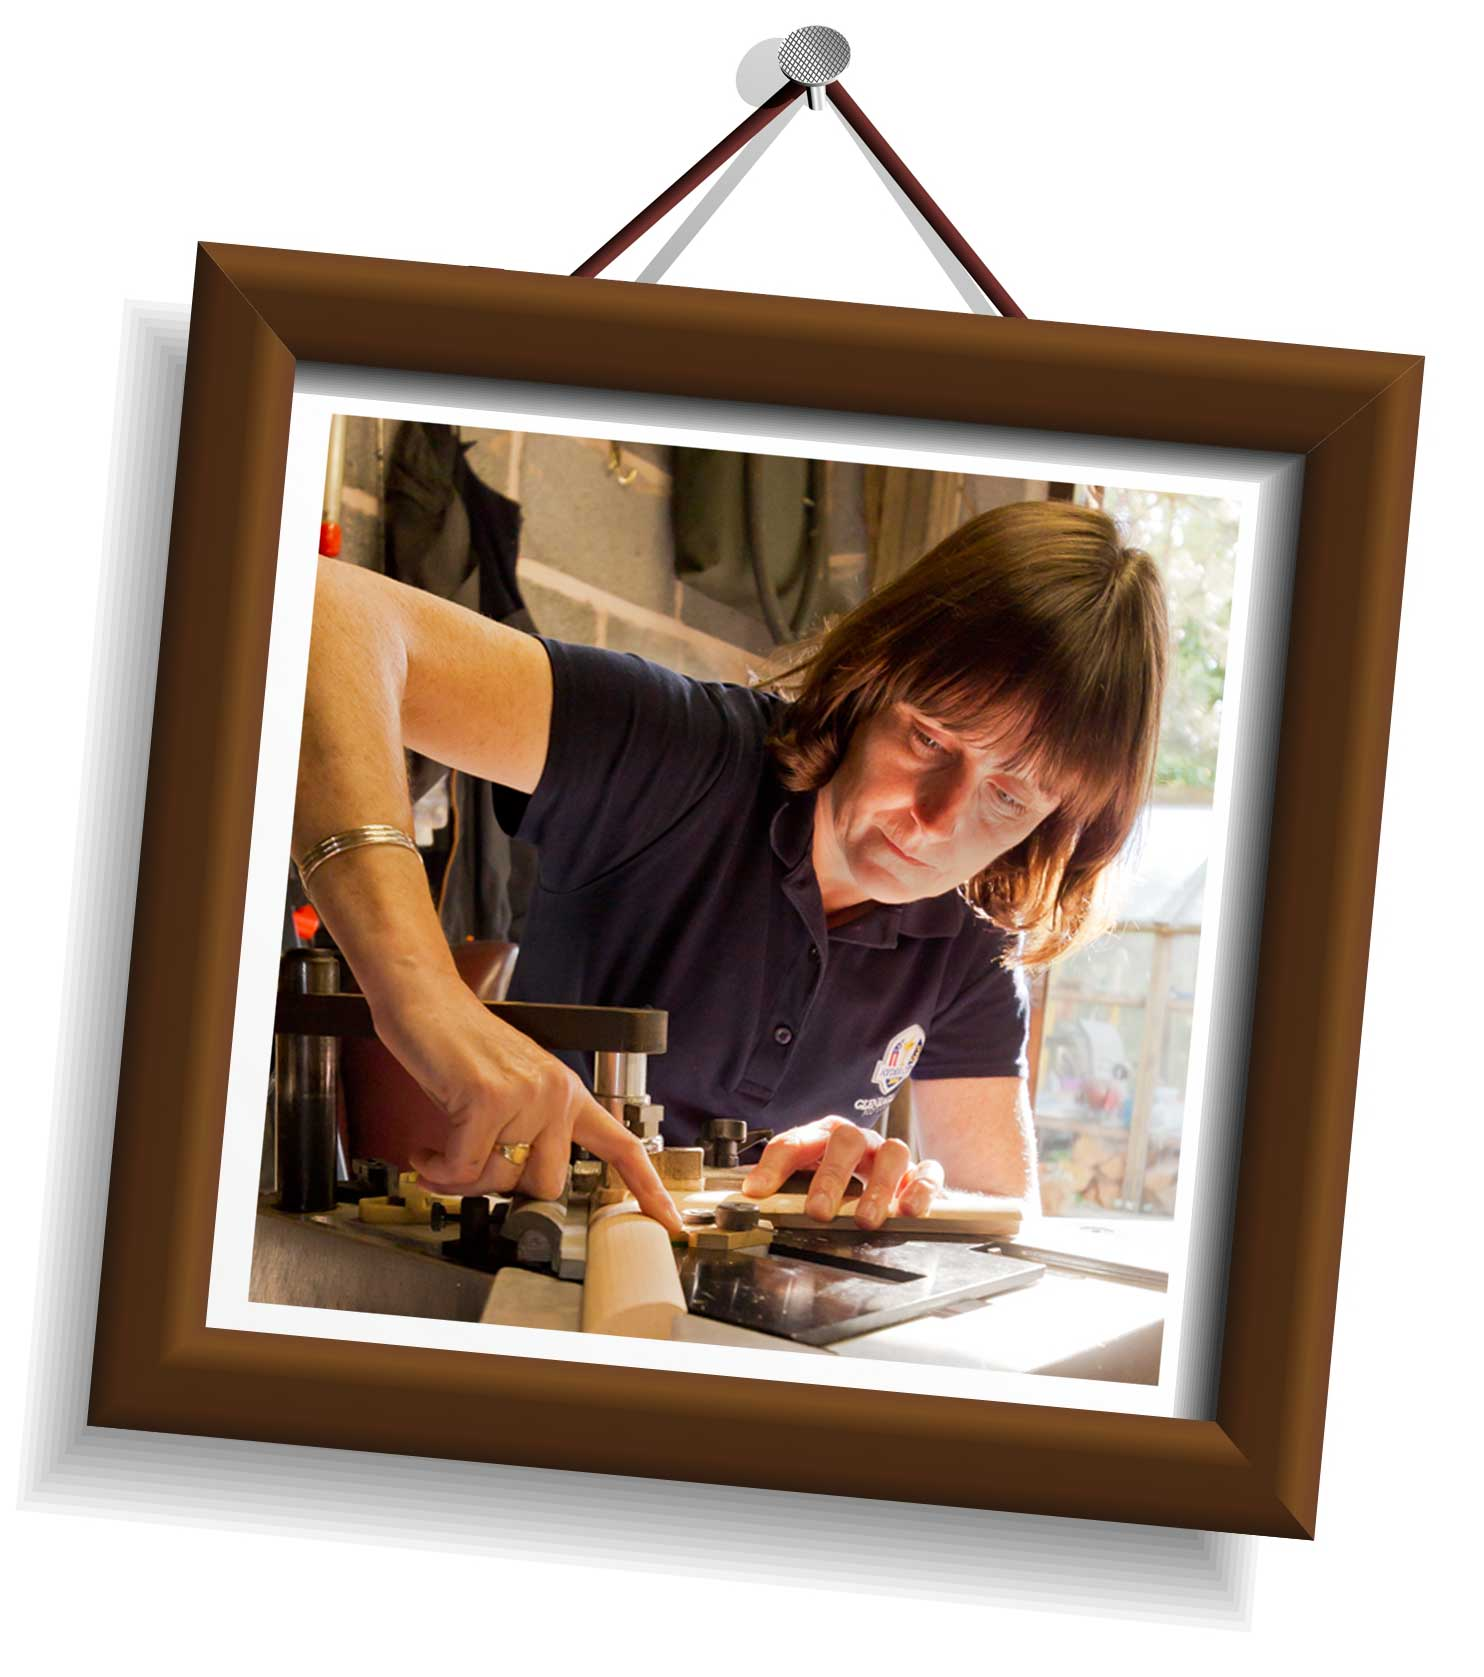 Professional framing services in Retford, Newark, Nottinghamshire, Lincolnshire